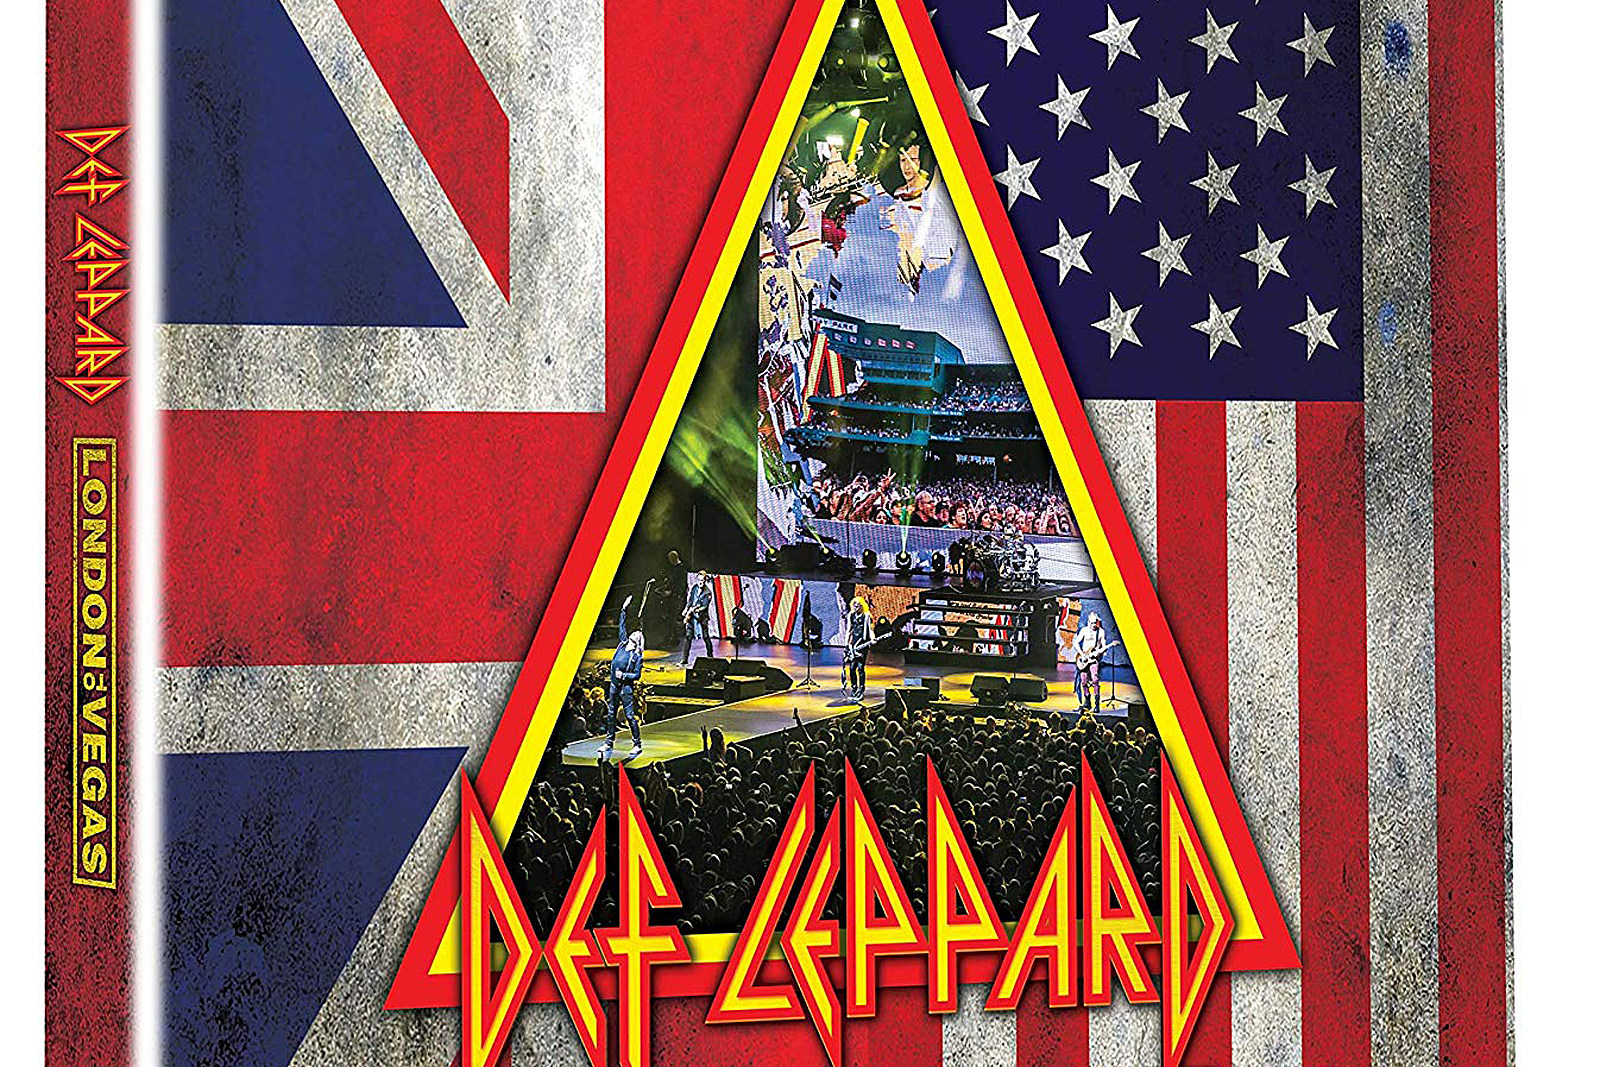 Def Leppard 'London to Vegas' Live Set Reportedly Coming Soon